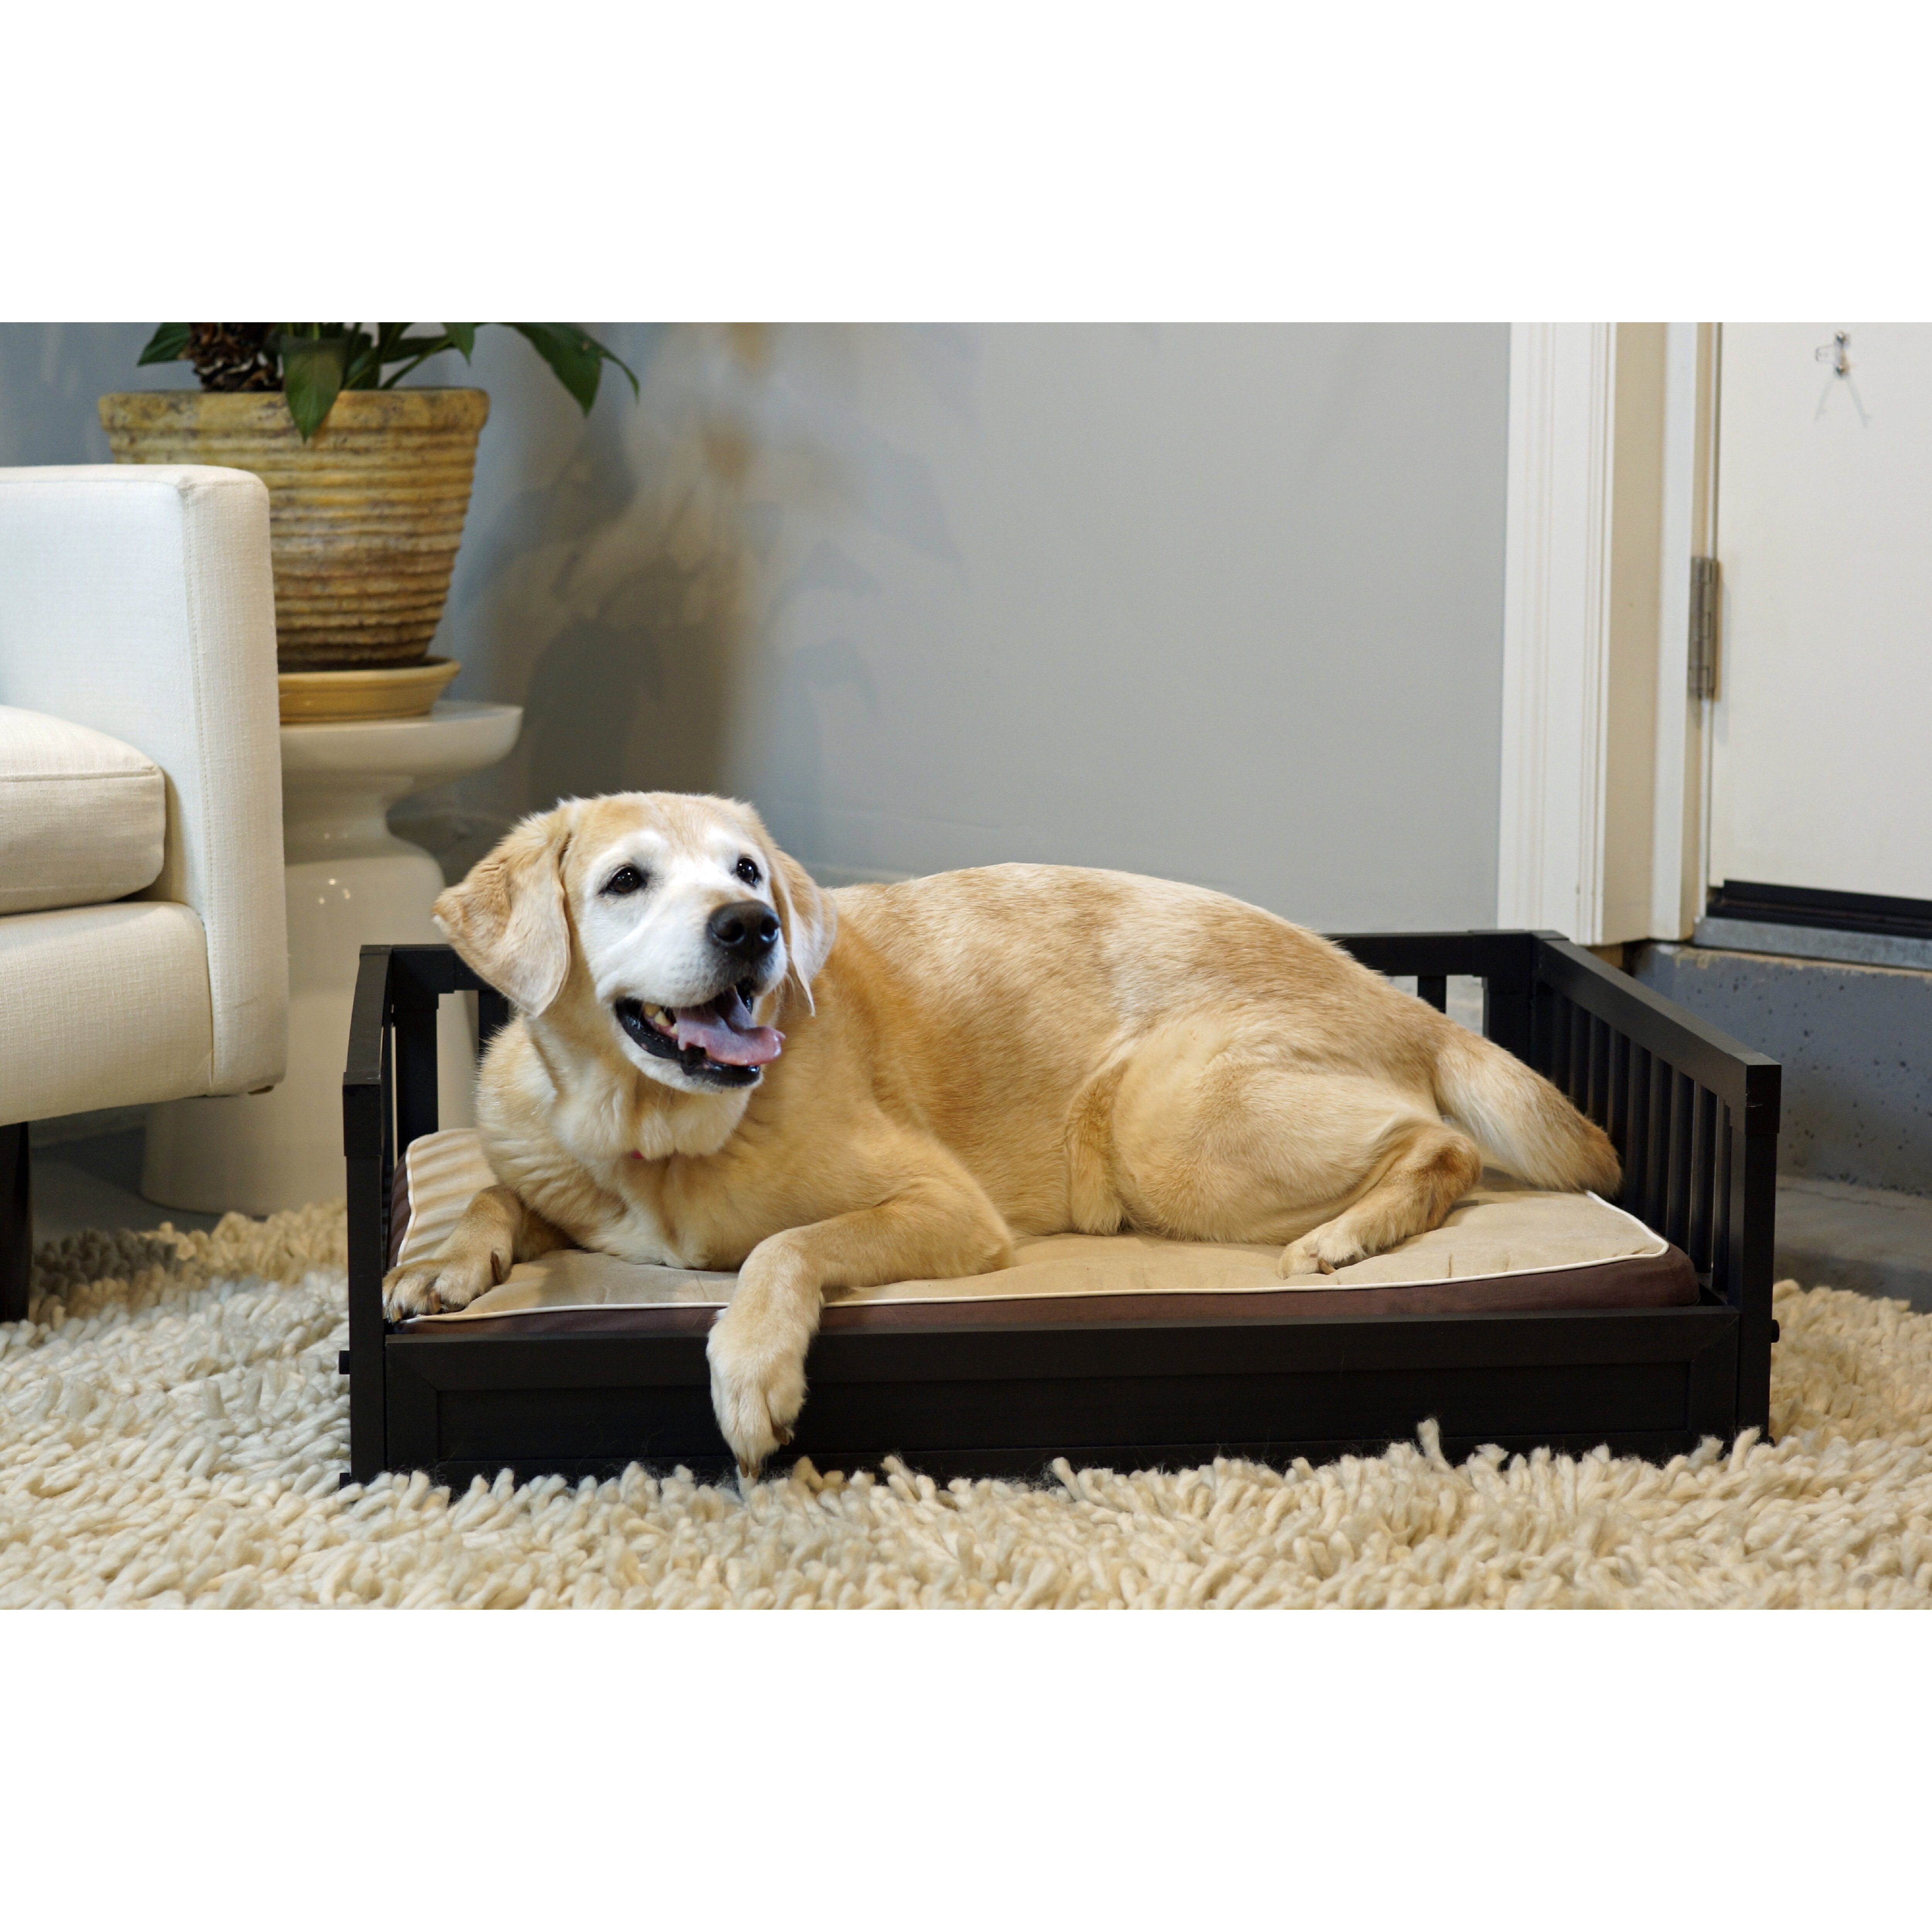 New Age Pet Habitat n Home My Buddy s Bunk Pet Bed